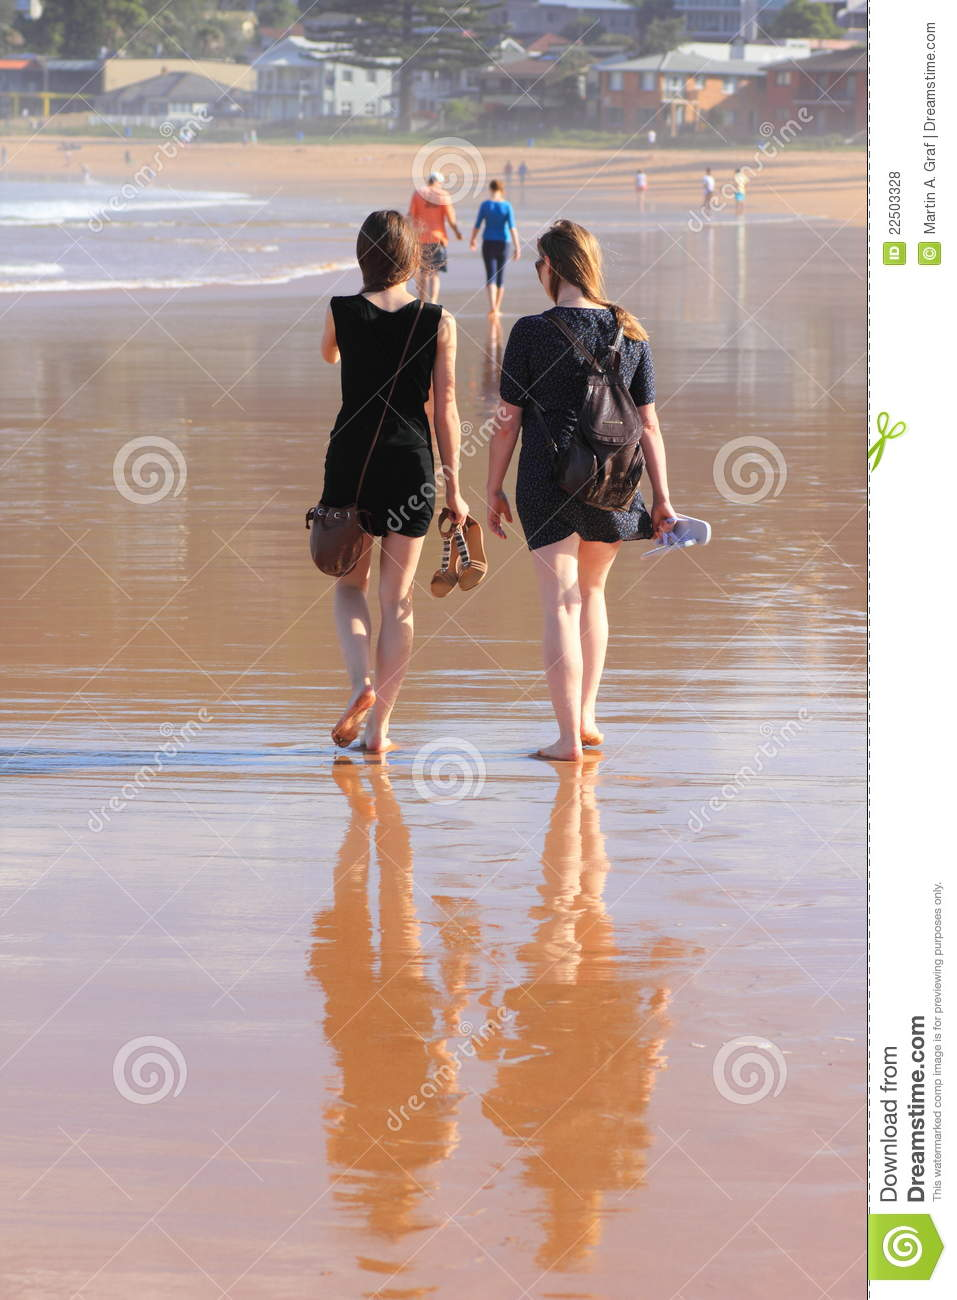 Australia avoca barefoot beach daughter lifestyle mother talking two walking women